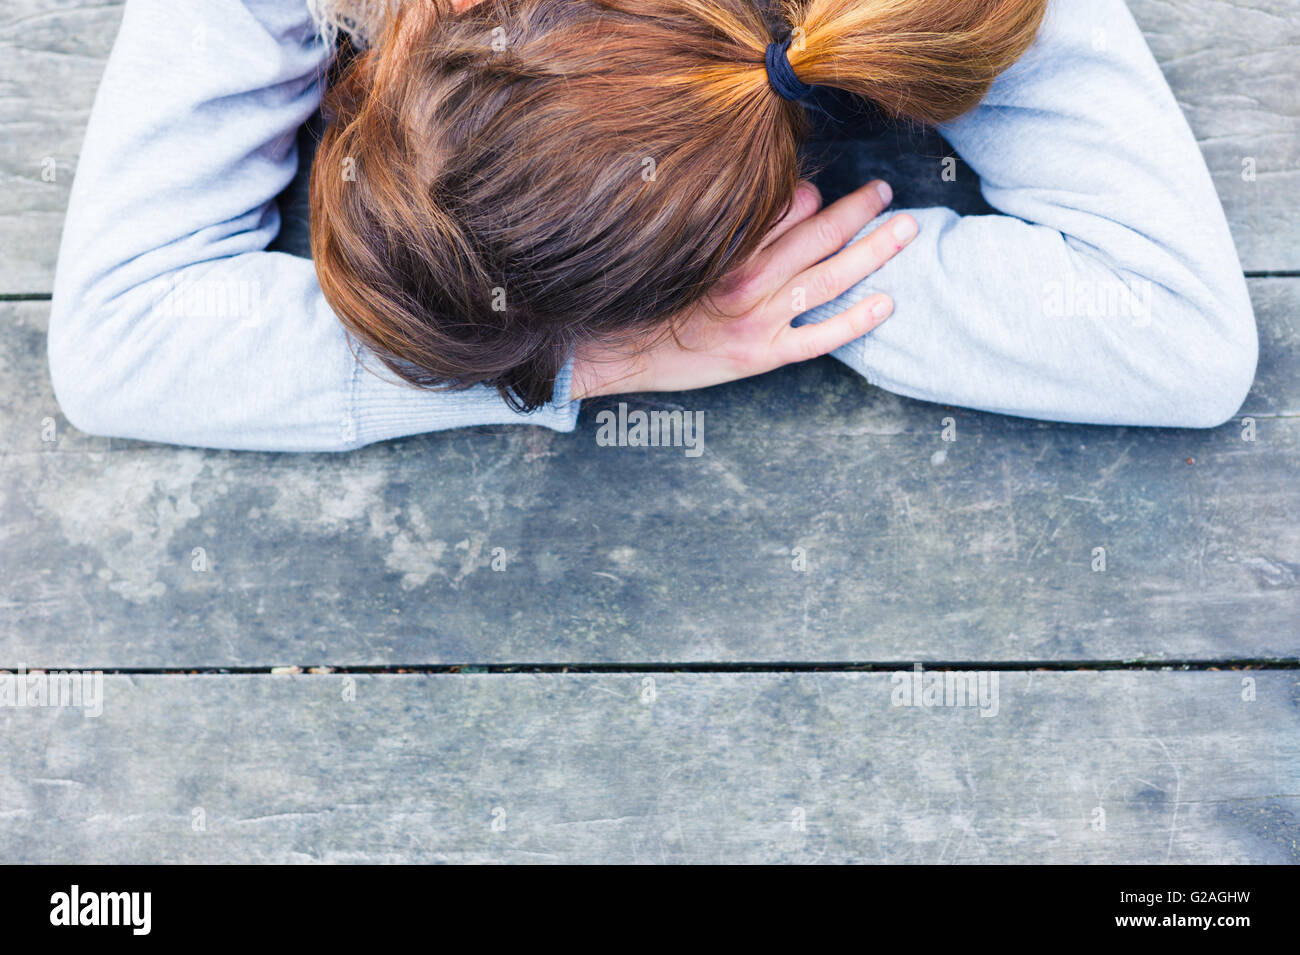 A sad young woman with her head resting on her hands at a table in the park - Stock Image